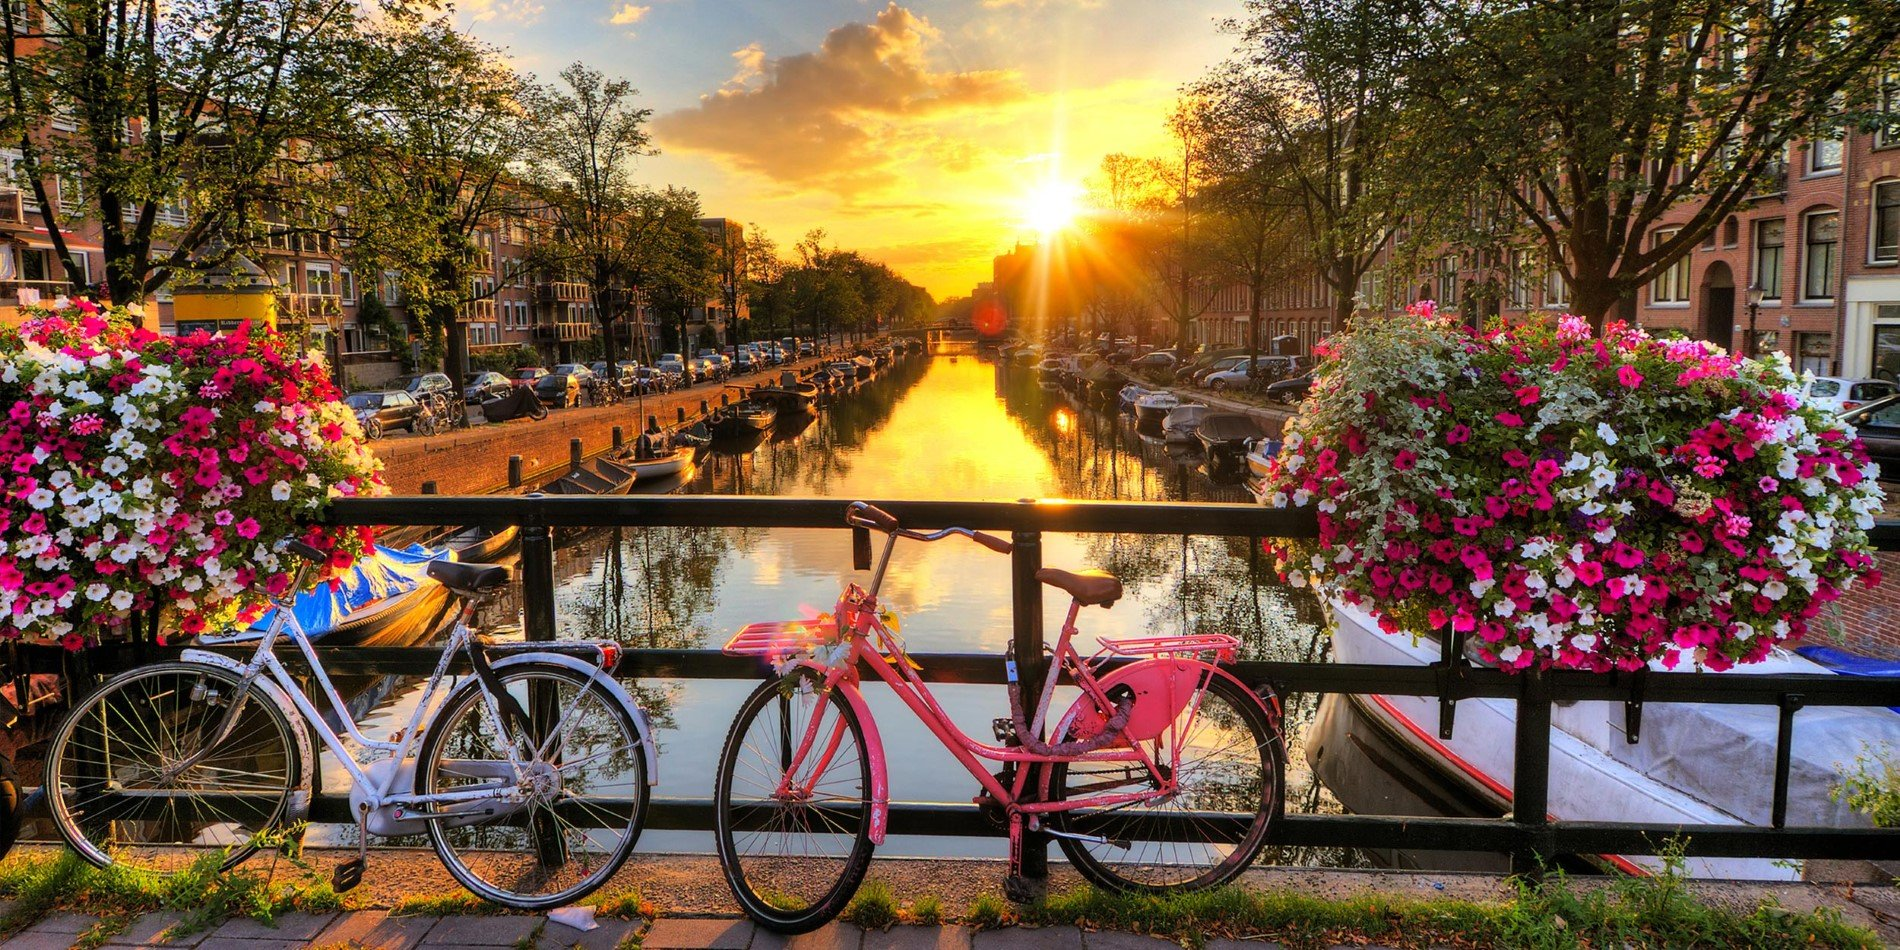 Sunrise over Amsterdam with flowers and cycle on a canal bridge.